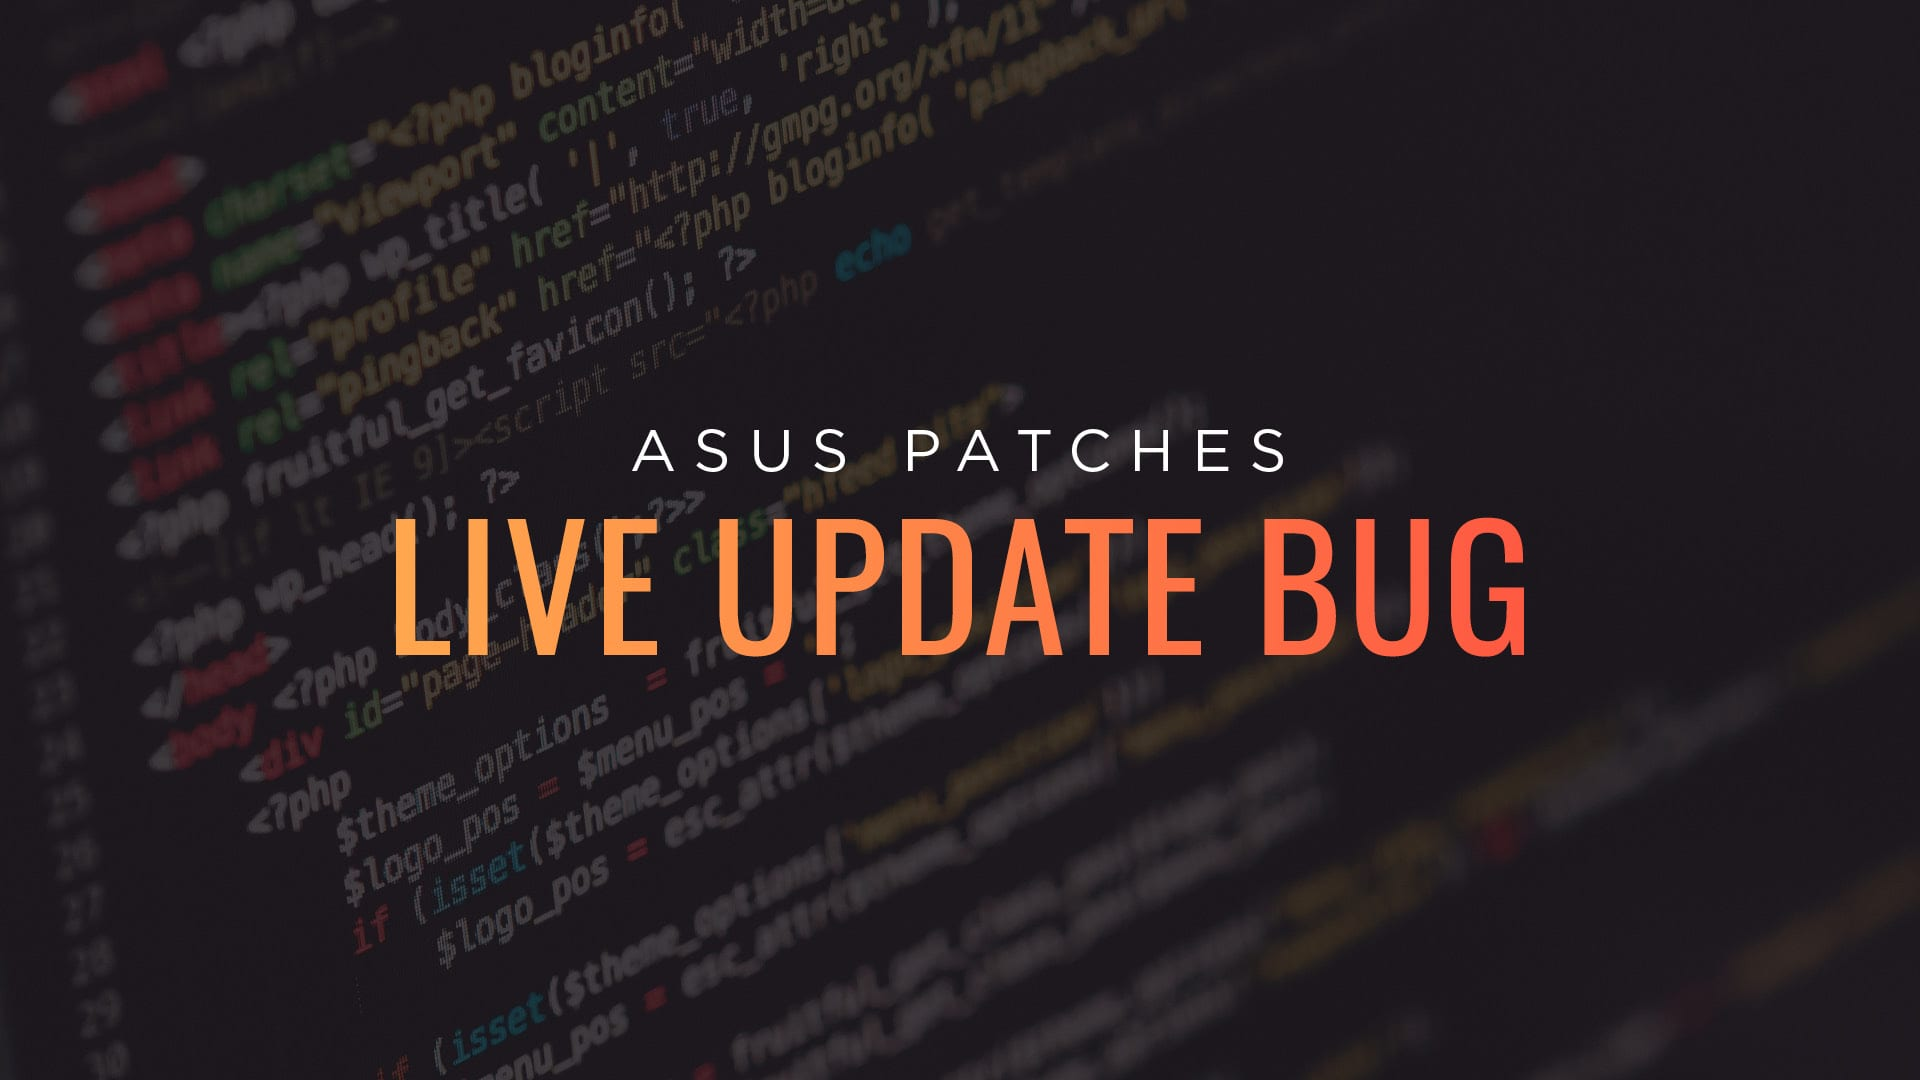 ASUS Patches Live Update Bug